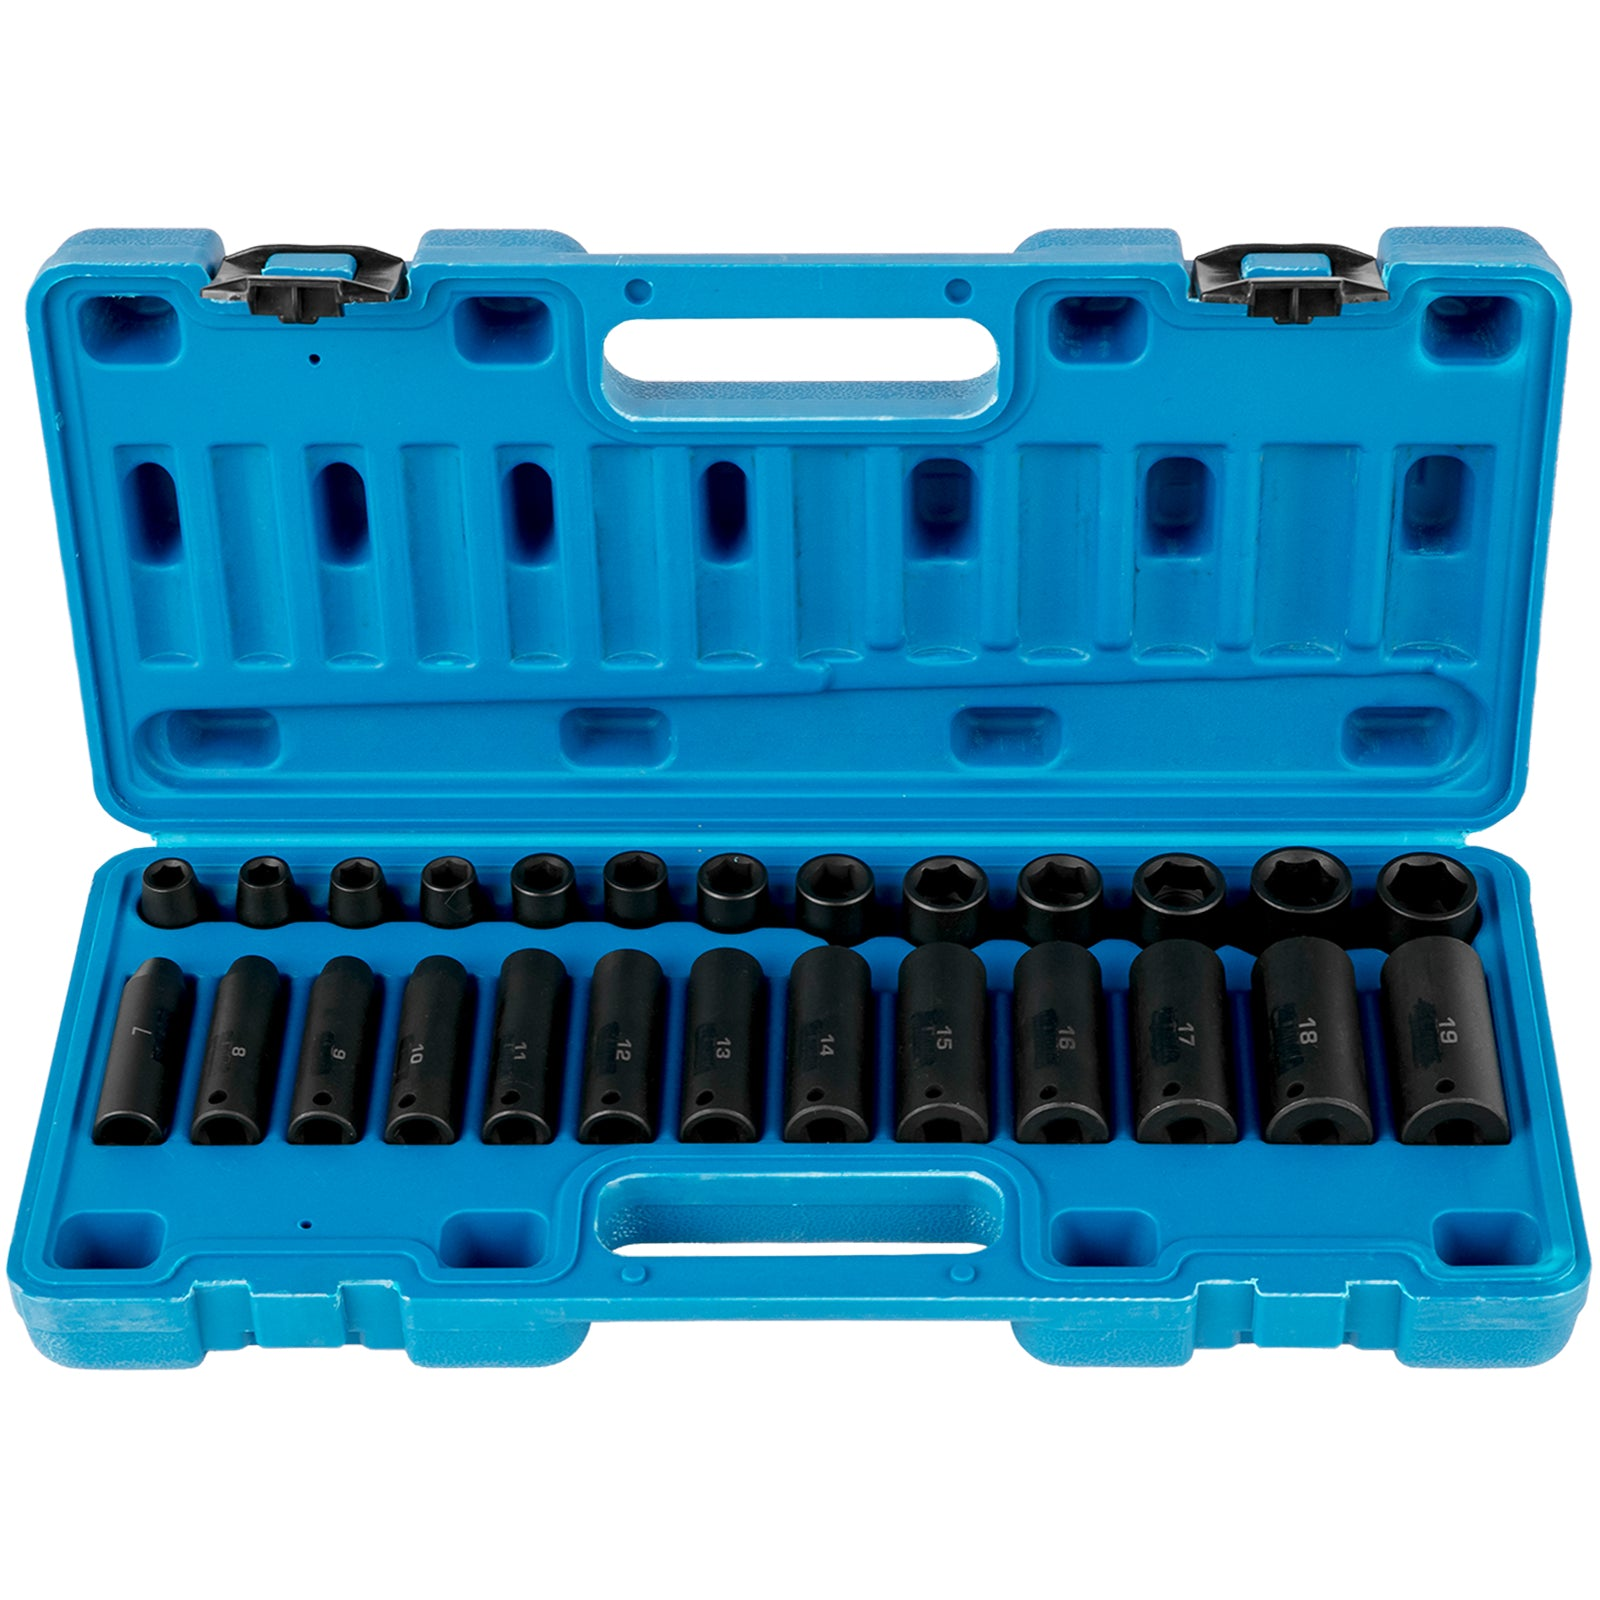 26 Pc Impact Socket Set 3/8 Inch 6-point Standard/deep 7mm - 19mm Chrome Metric